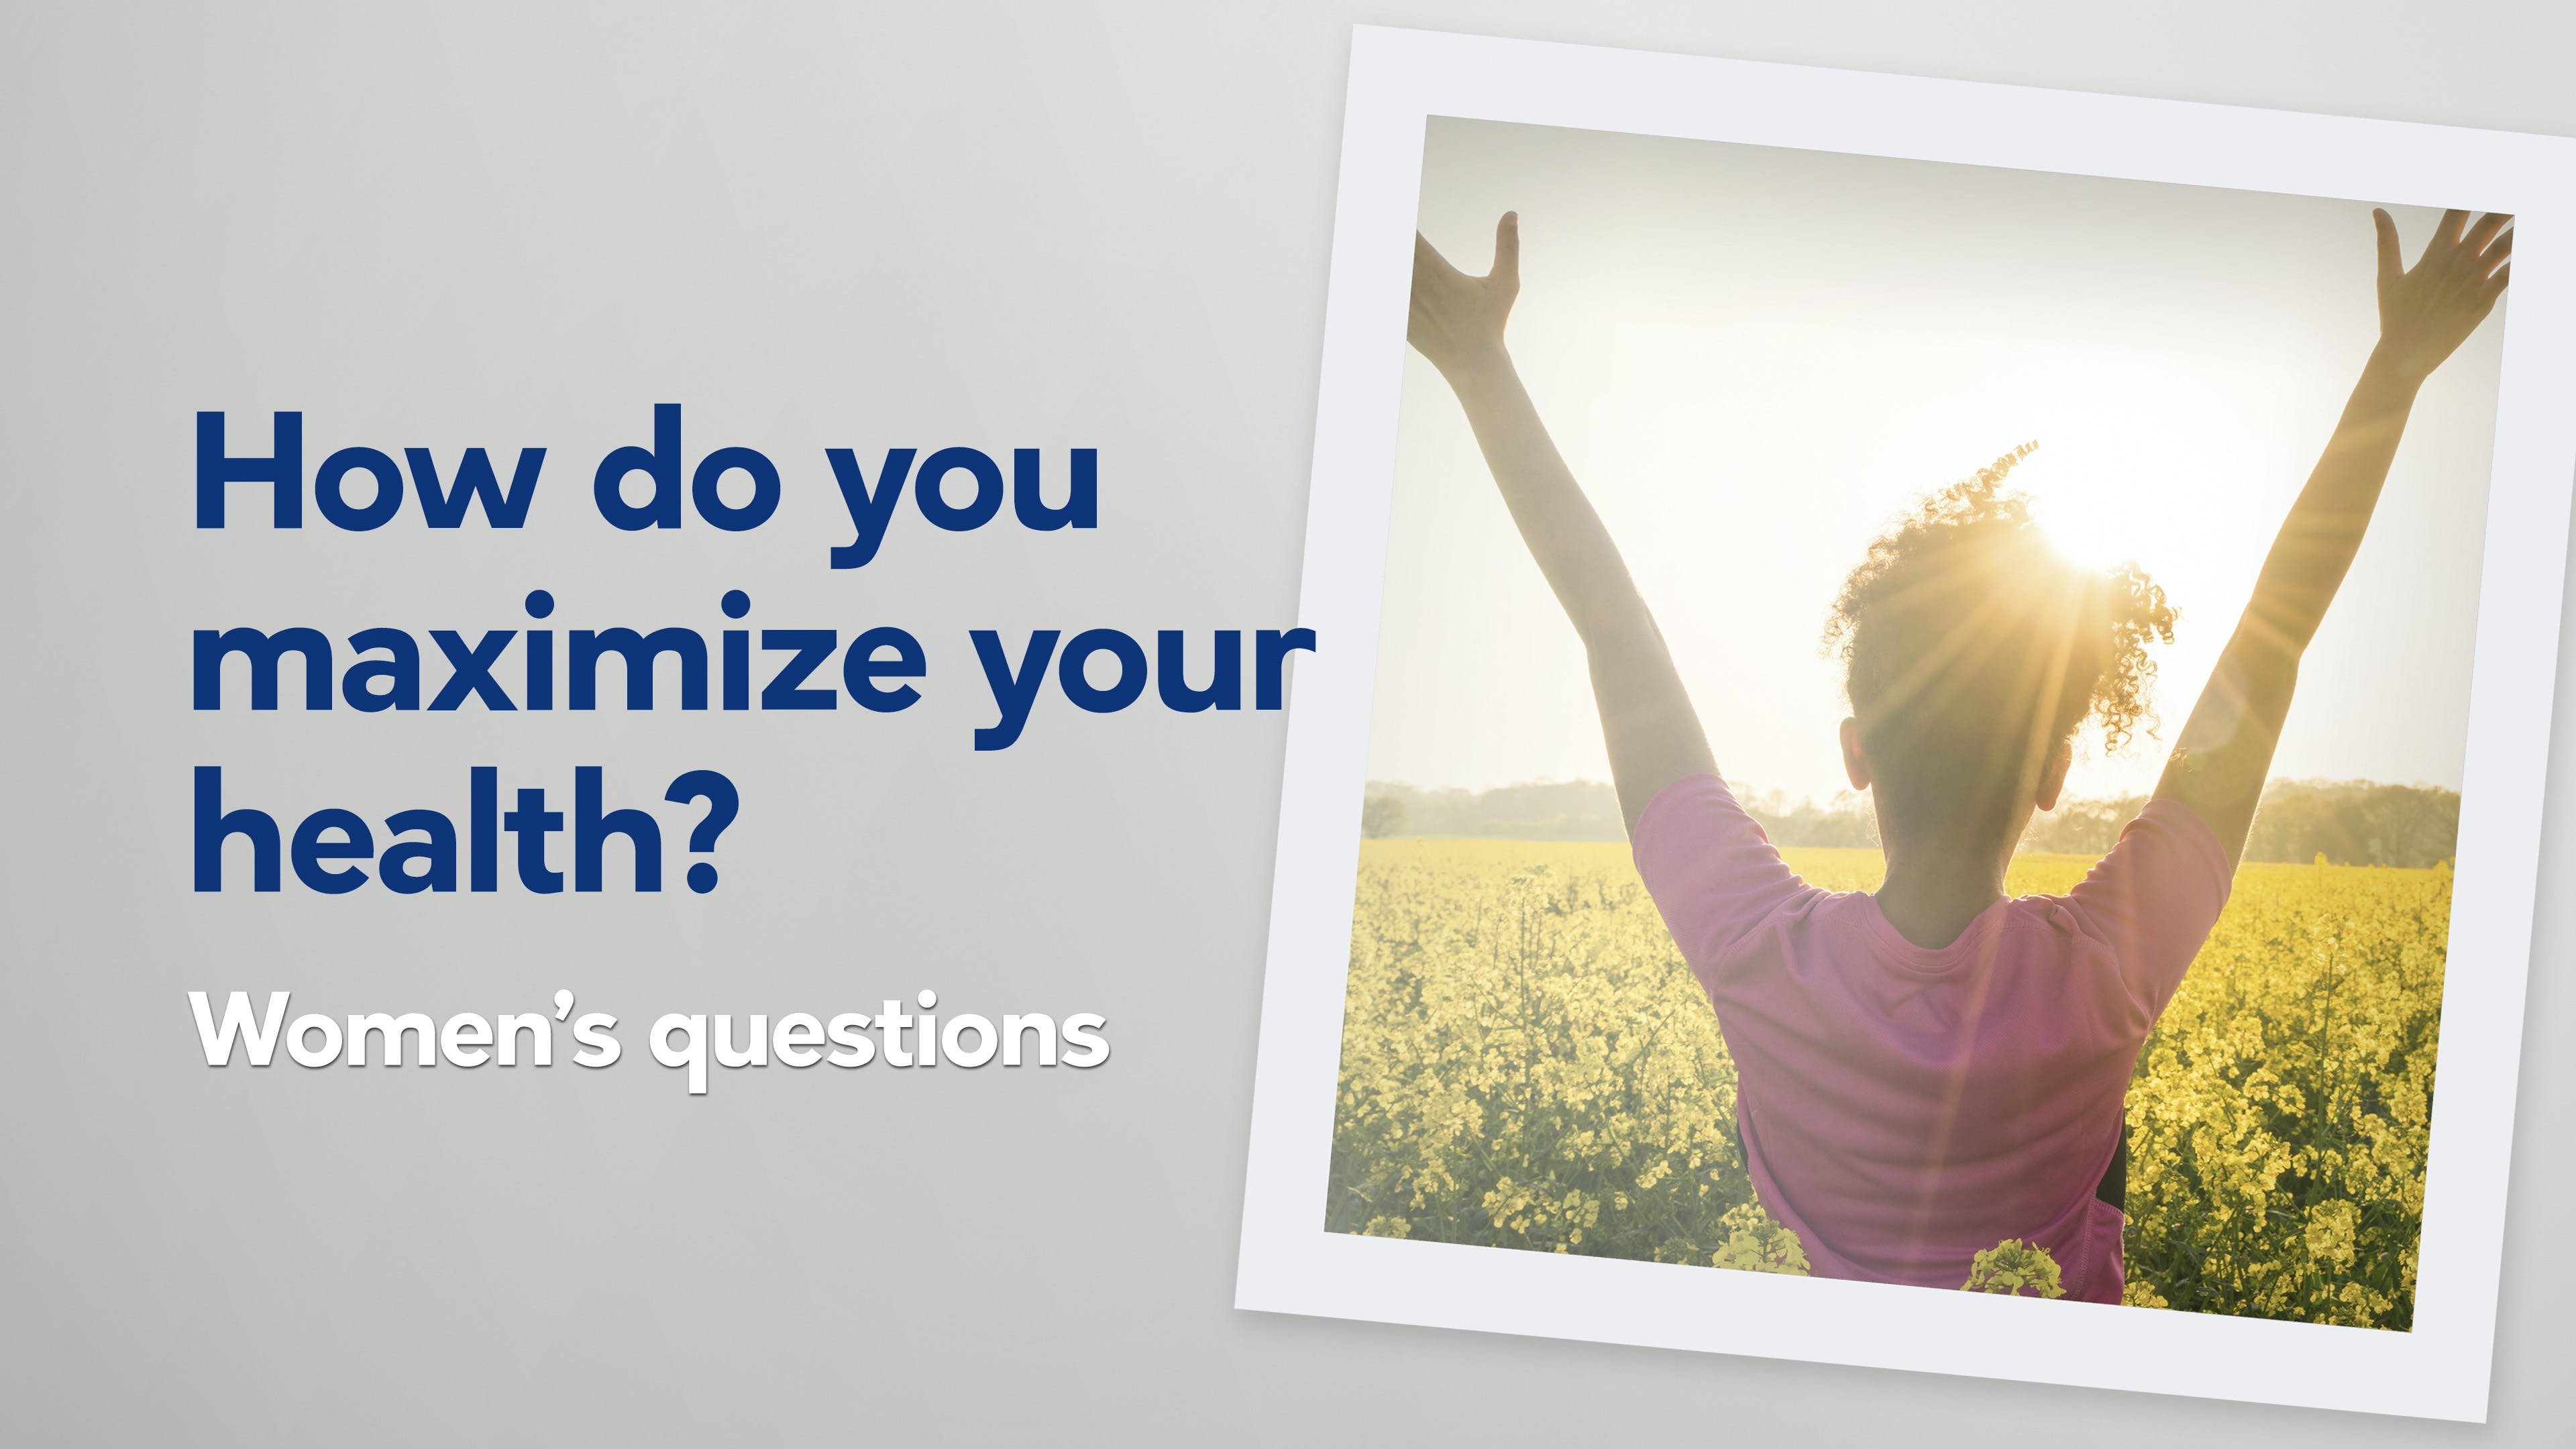 How-do-you-maximize-your-health-(womens-questions)